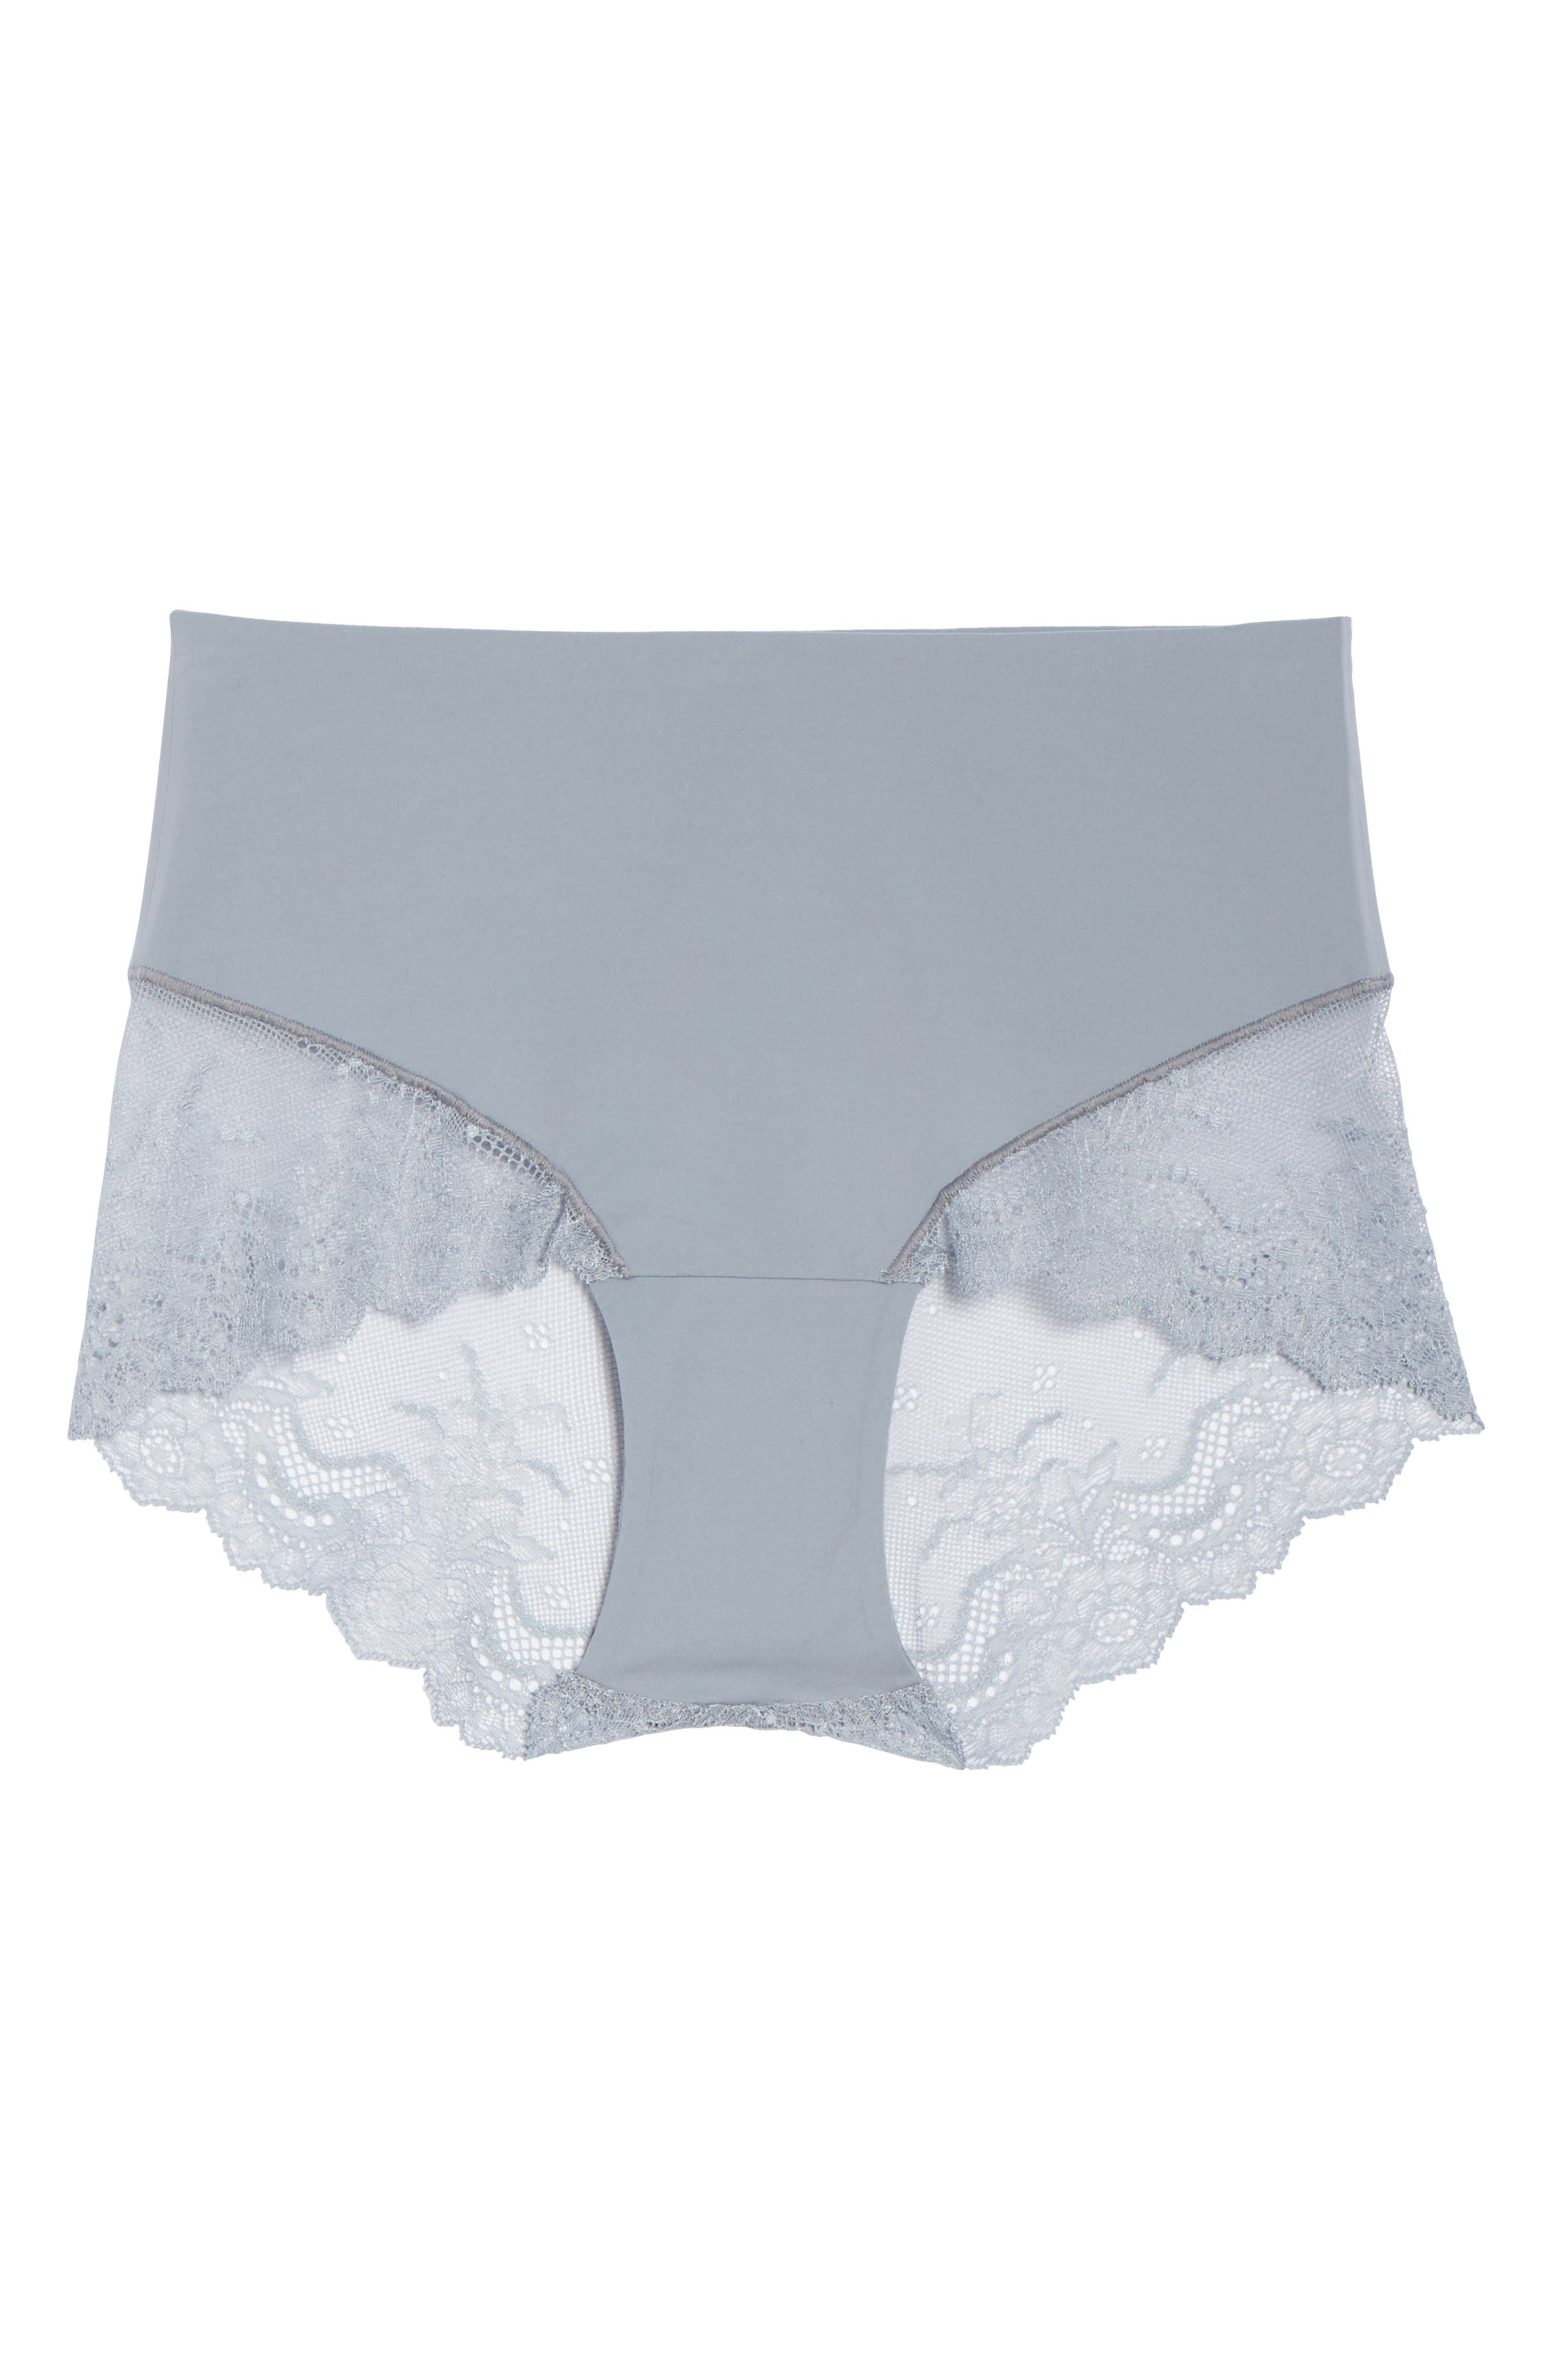 Undie-tectable Lace Hipster Panties,                             Alternate thumbnail 6, color,                             FOG GREY